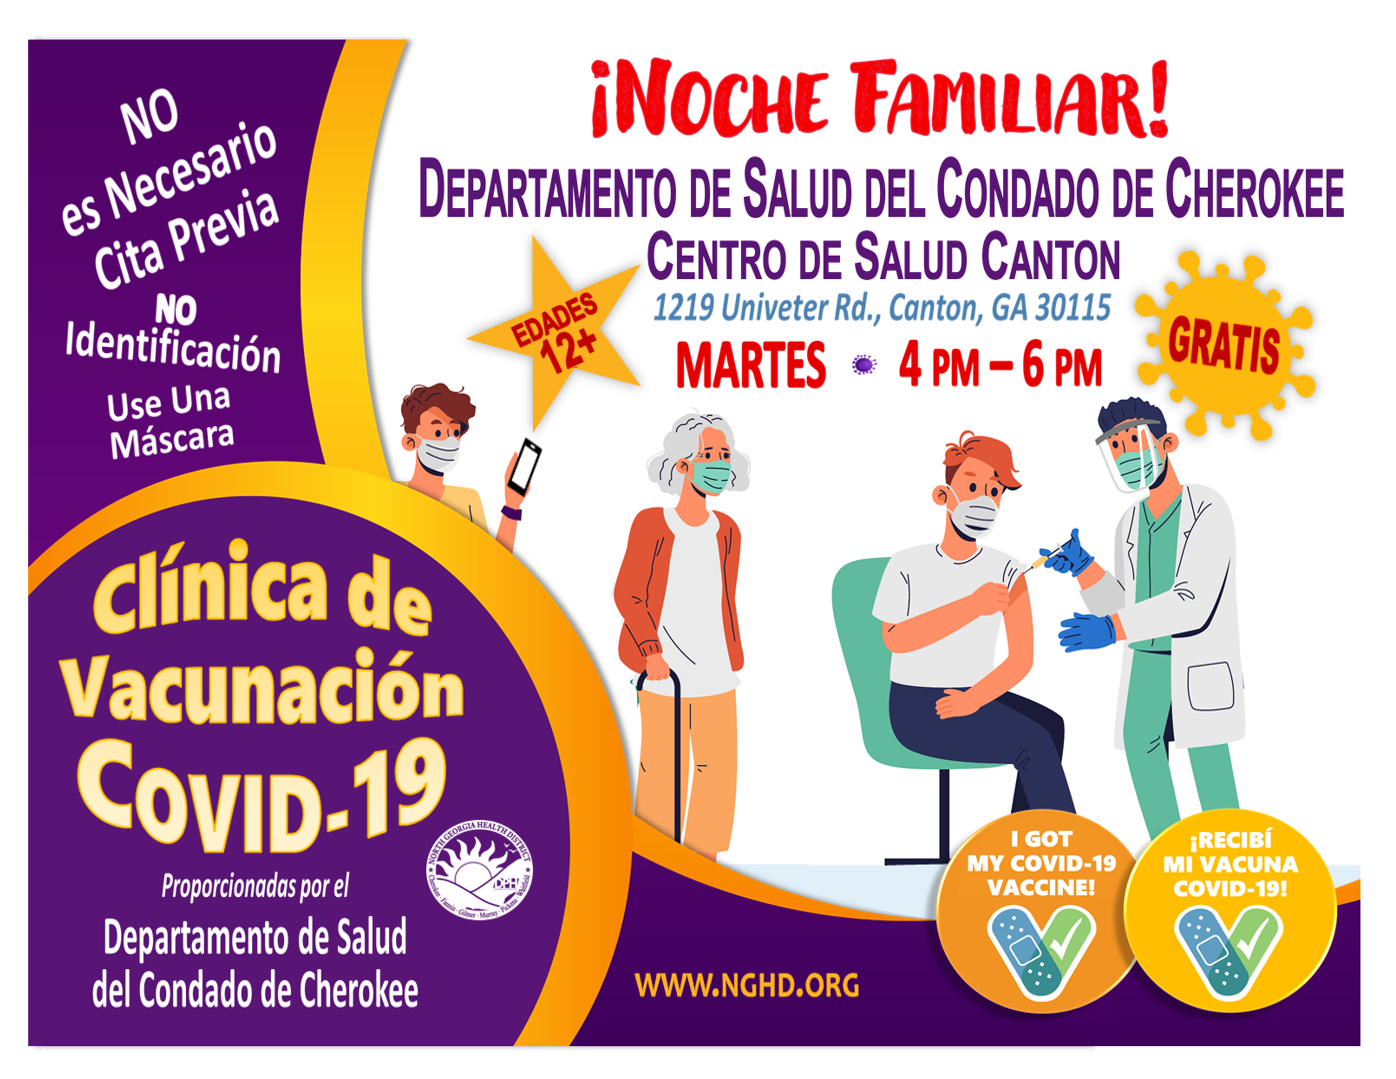 COVID 19 Vaccine Clinic Cherokee Health Dept Family Night Tuesdays flyer Sp